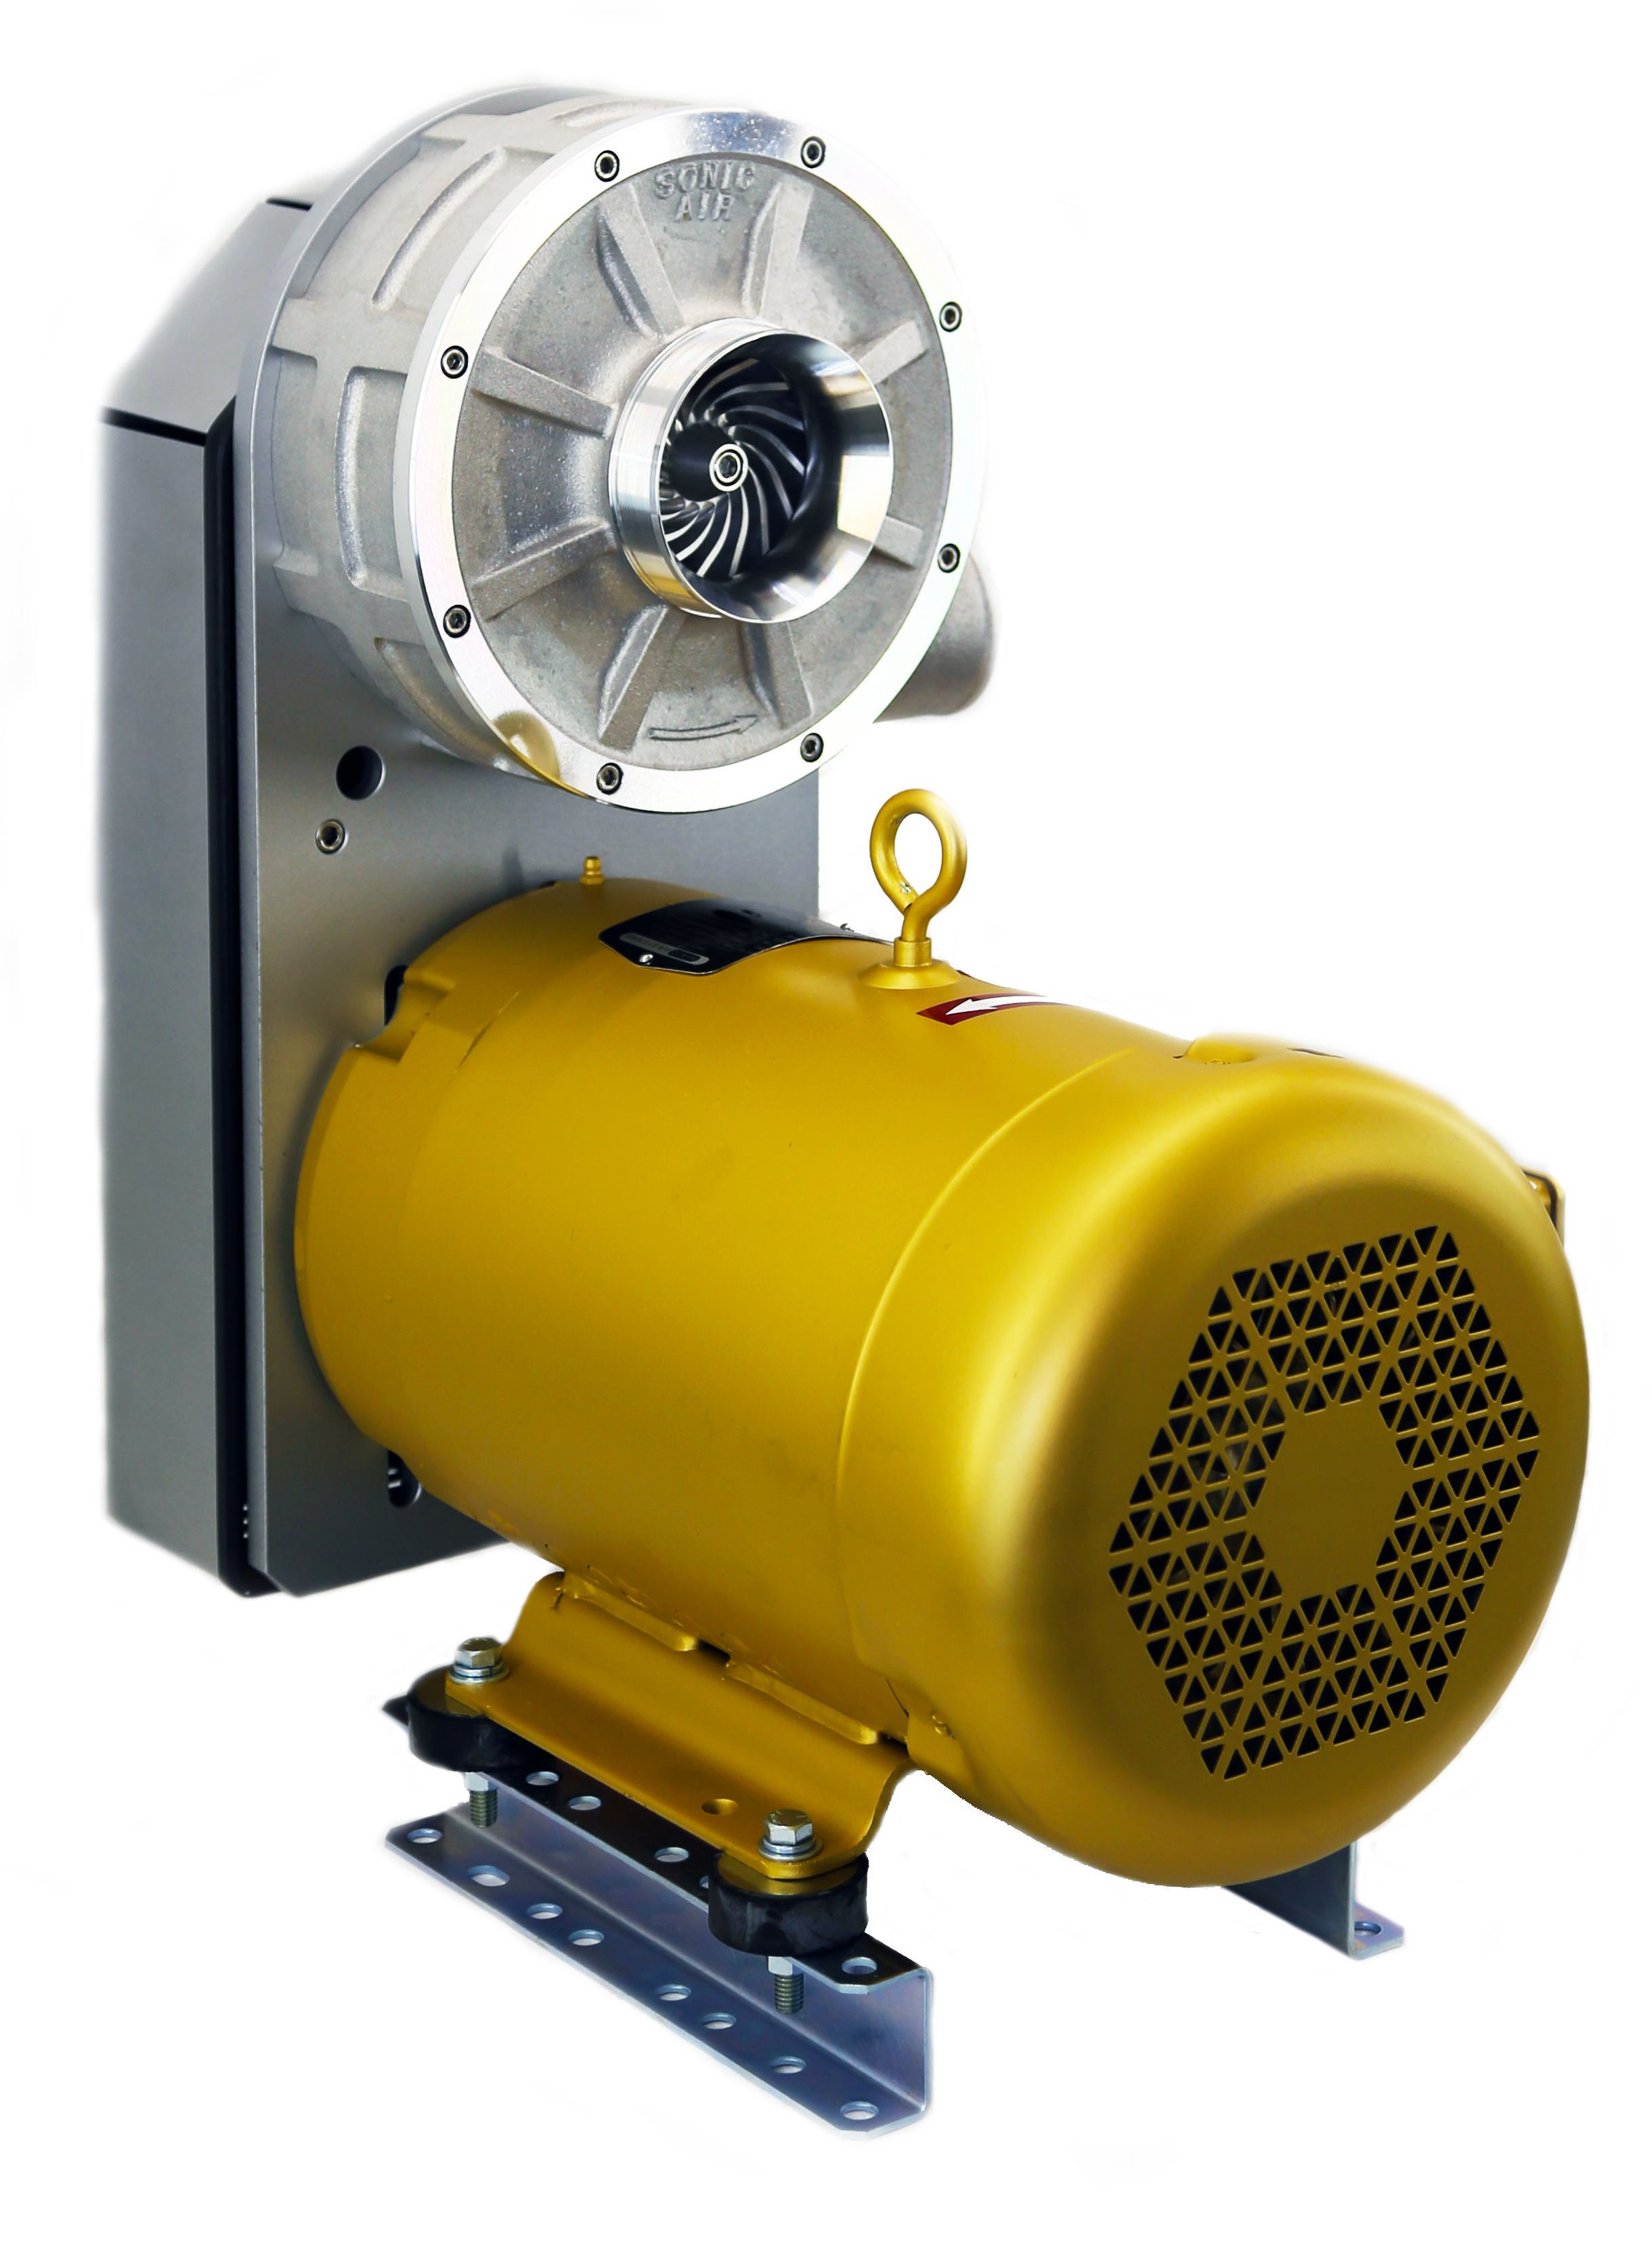 Air Blowers Fans : Sonic air centrifugal blowers industrial